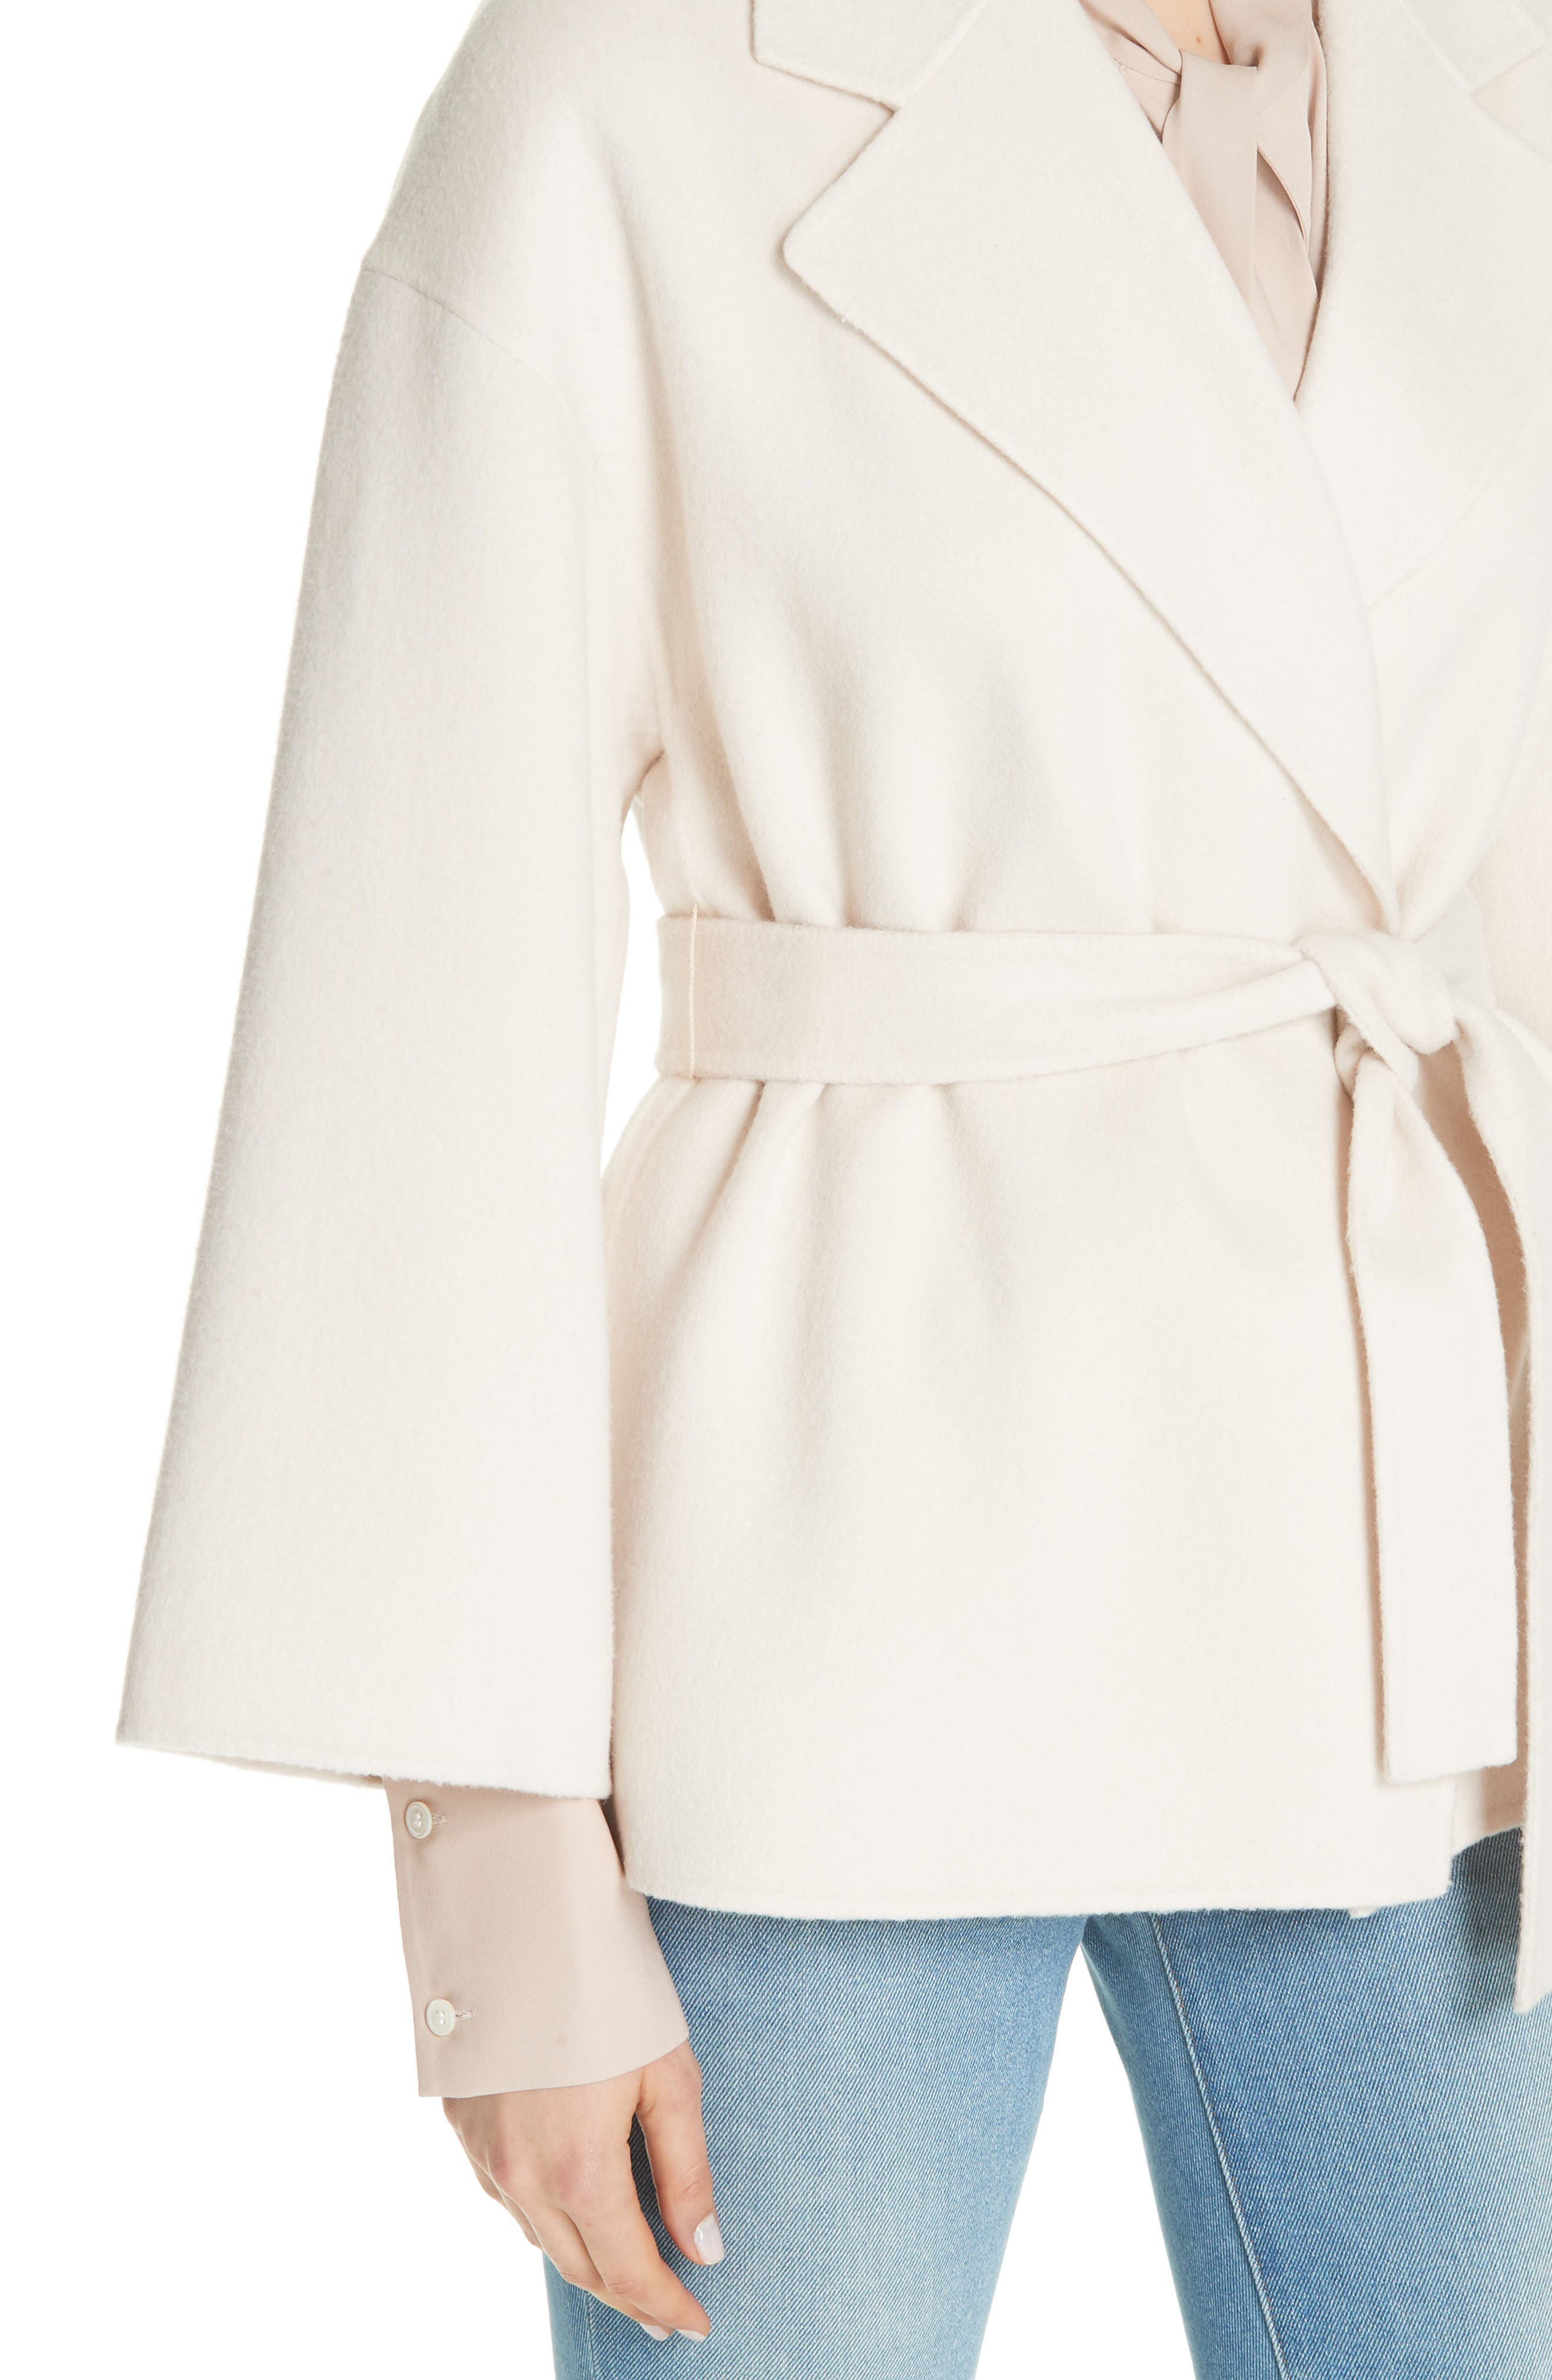 Wool & Cashmere Belted Jacket,                             Alternate thumbnail 4, color,                             BUTTERCREAM